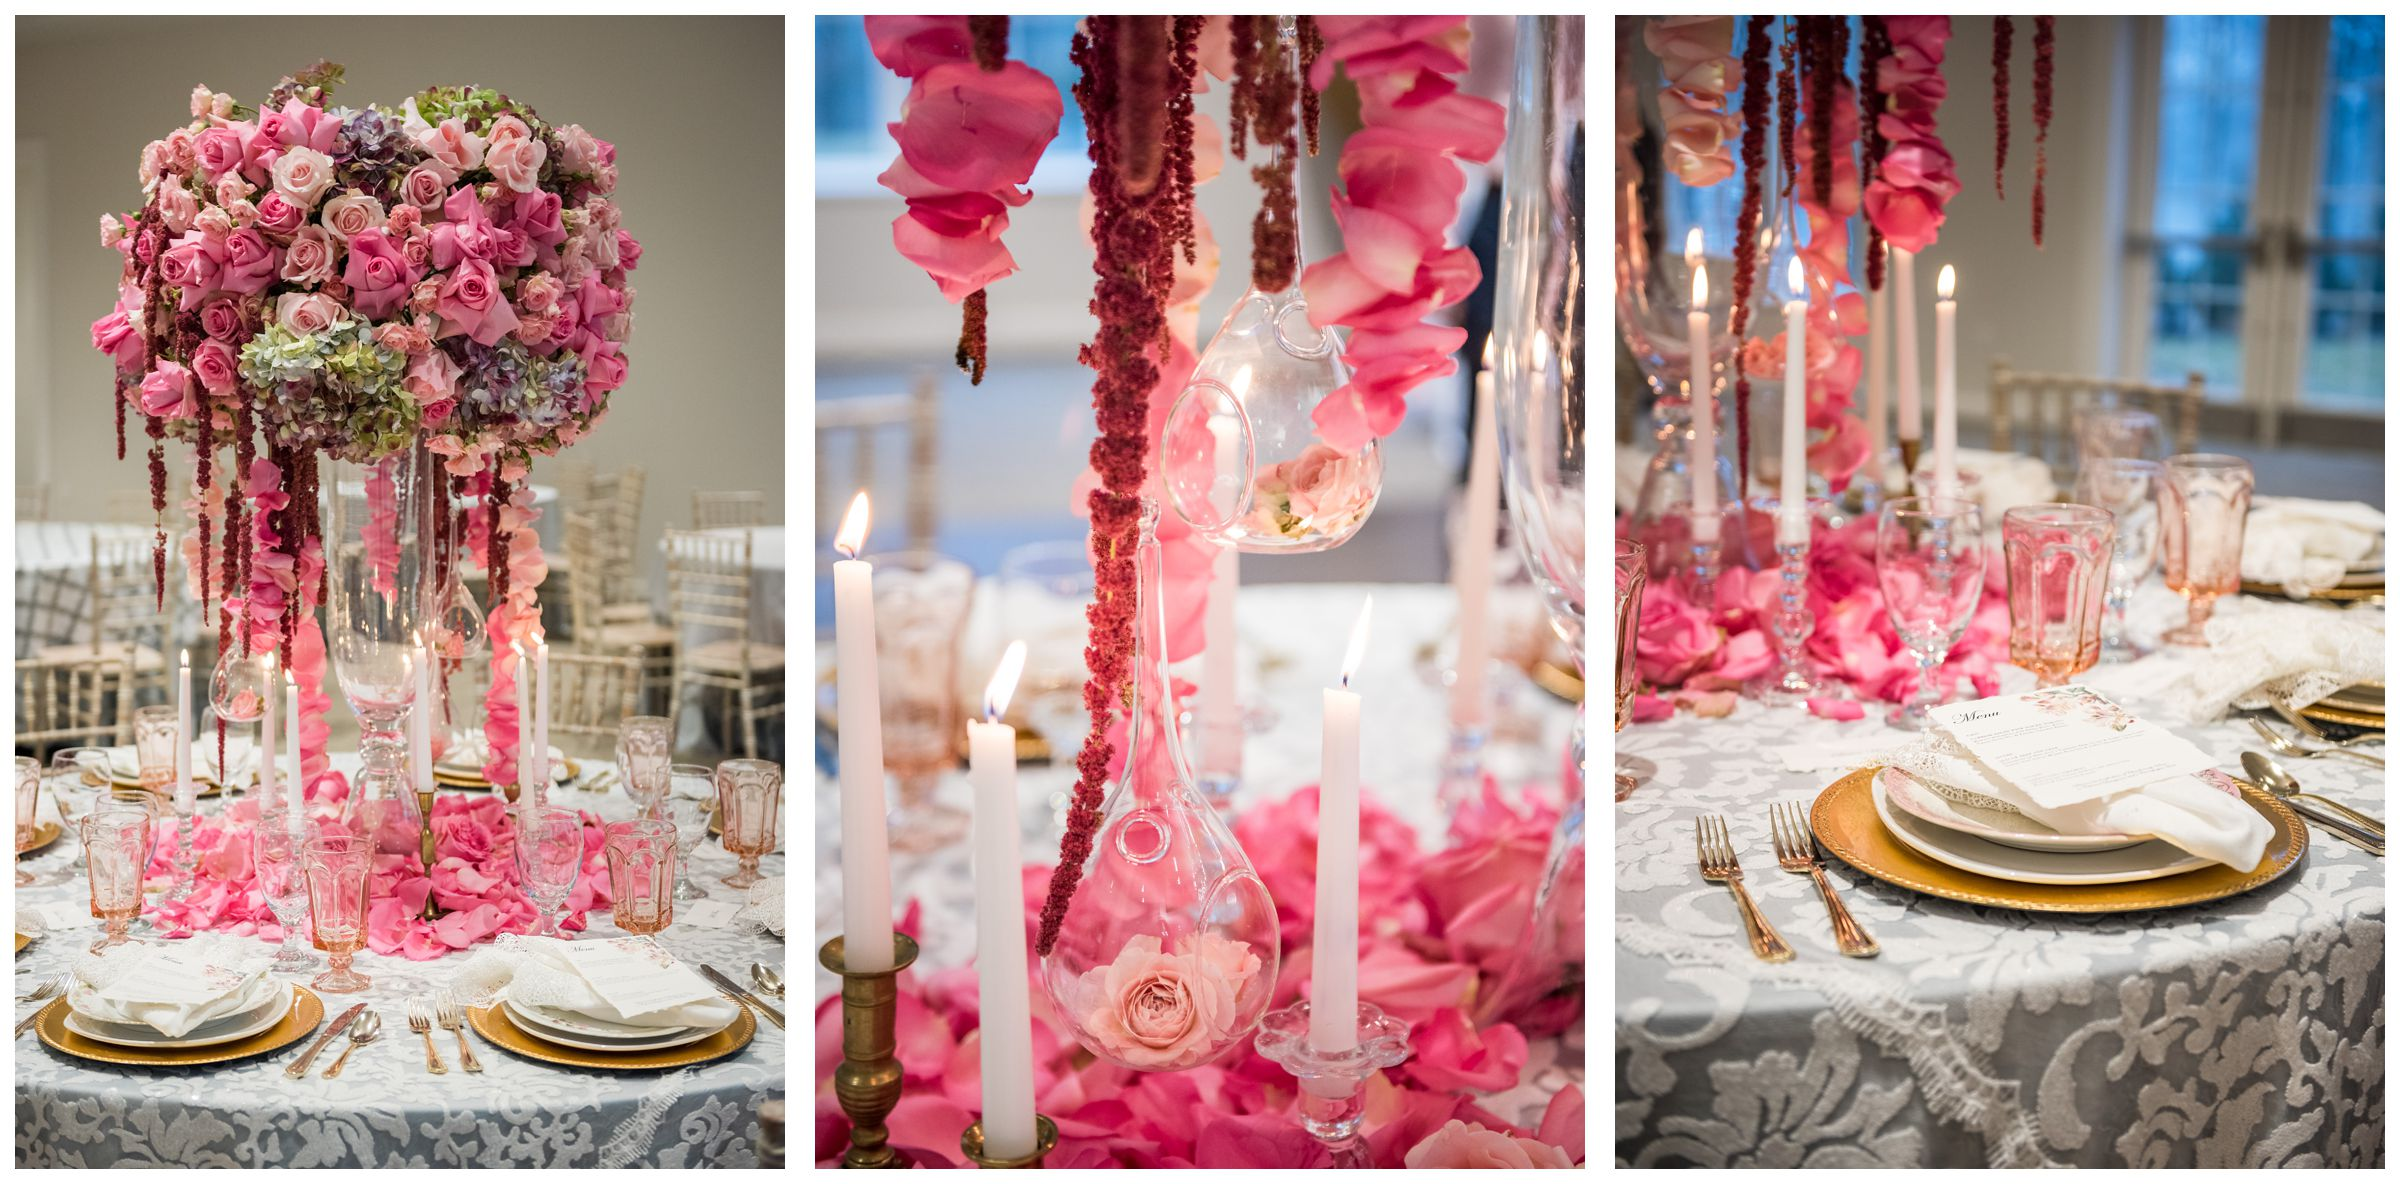 pink and red table scape wedding decor at The Estate at New Albany